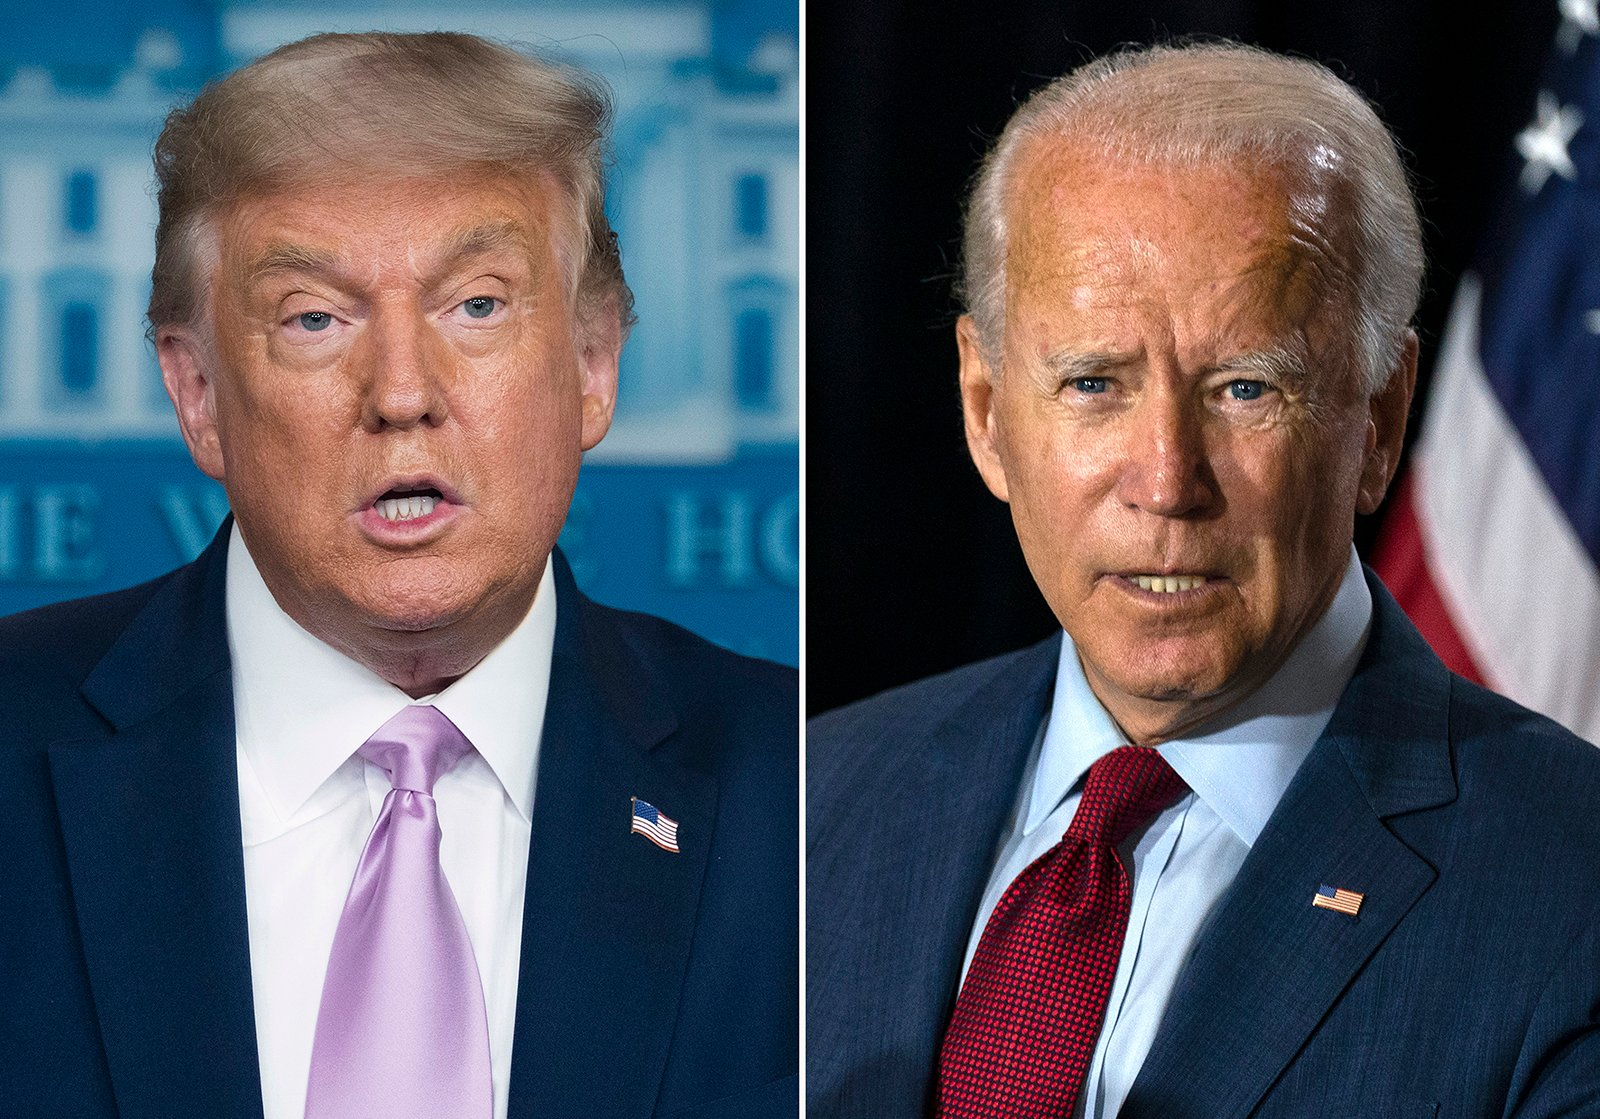 In battleground states, American Jews prefer Biden over Trump by a wide margin